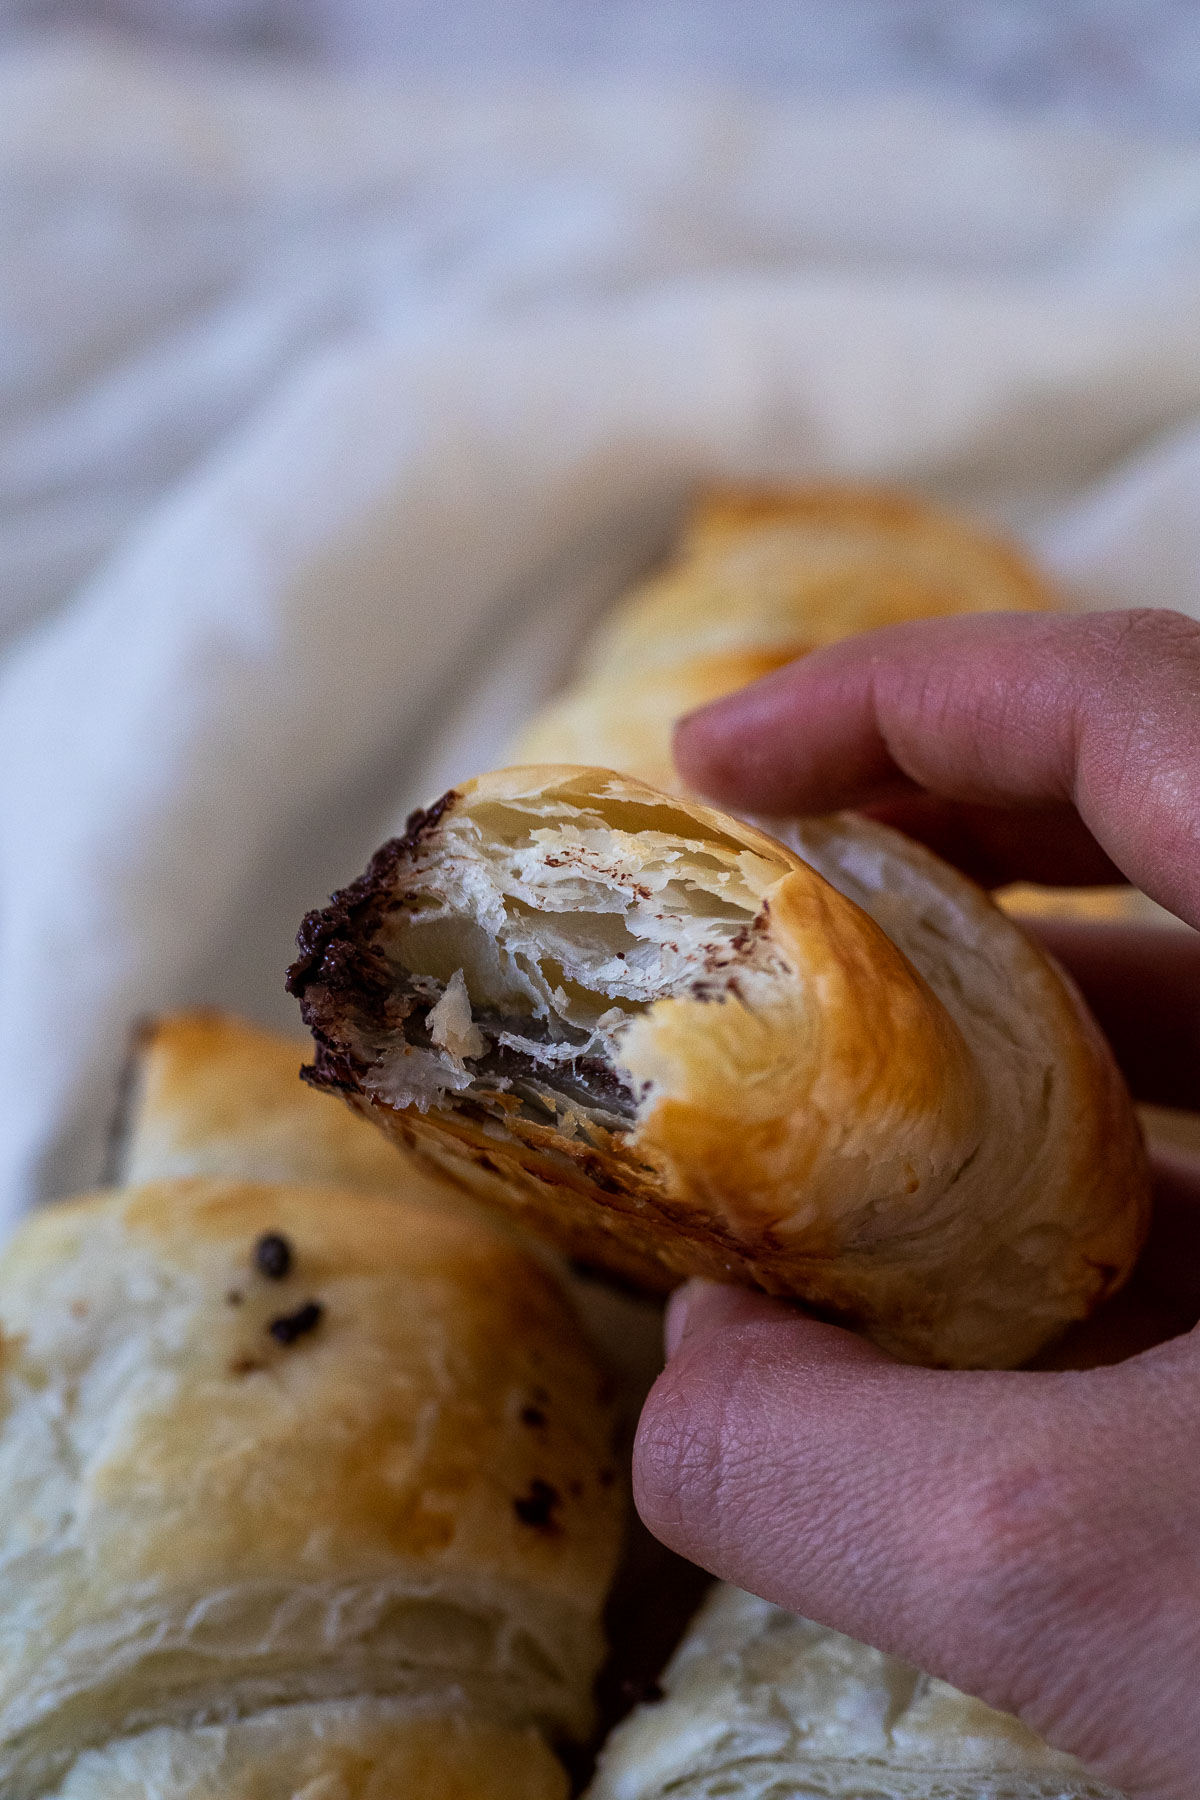 Holding a vegan chocolate croissants with flaky layers